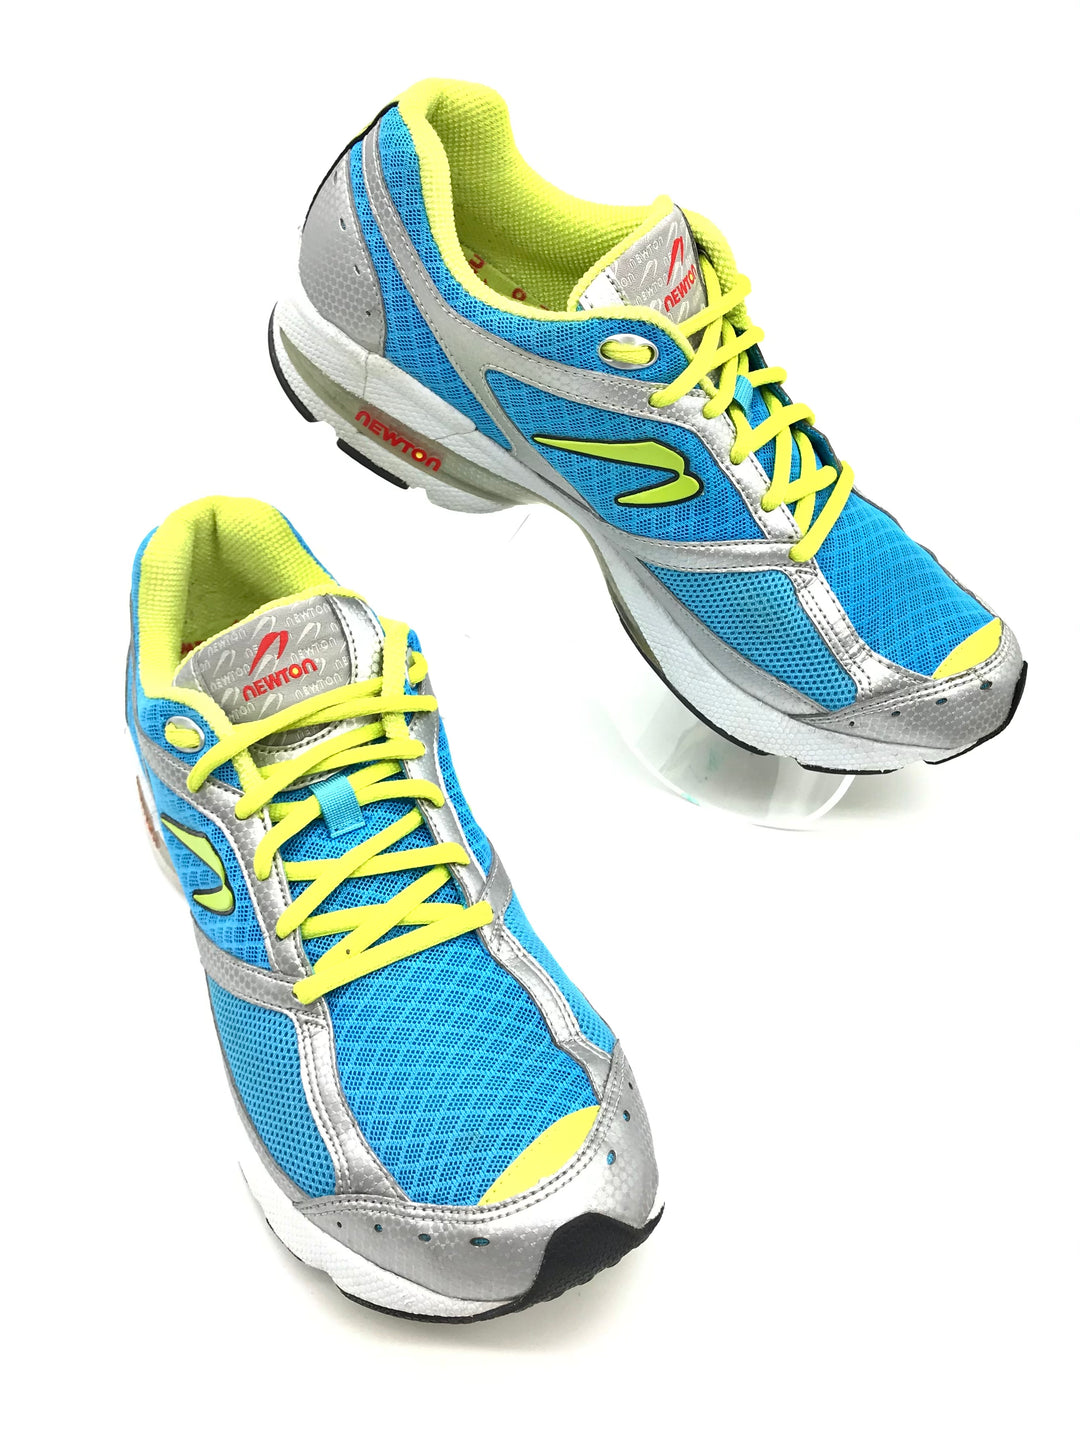 Primary Photo - BRAND:  NEWTON<BR>STYLE: SHOES ATHLETIC <BR>COLOR: BLUE YELLOW <BR>SIZE: 9 <BR>SKU: 262-26275-71113<BR>GENTLE WEAR - AS IS